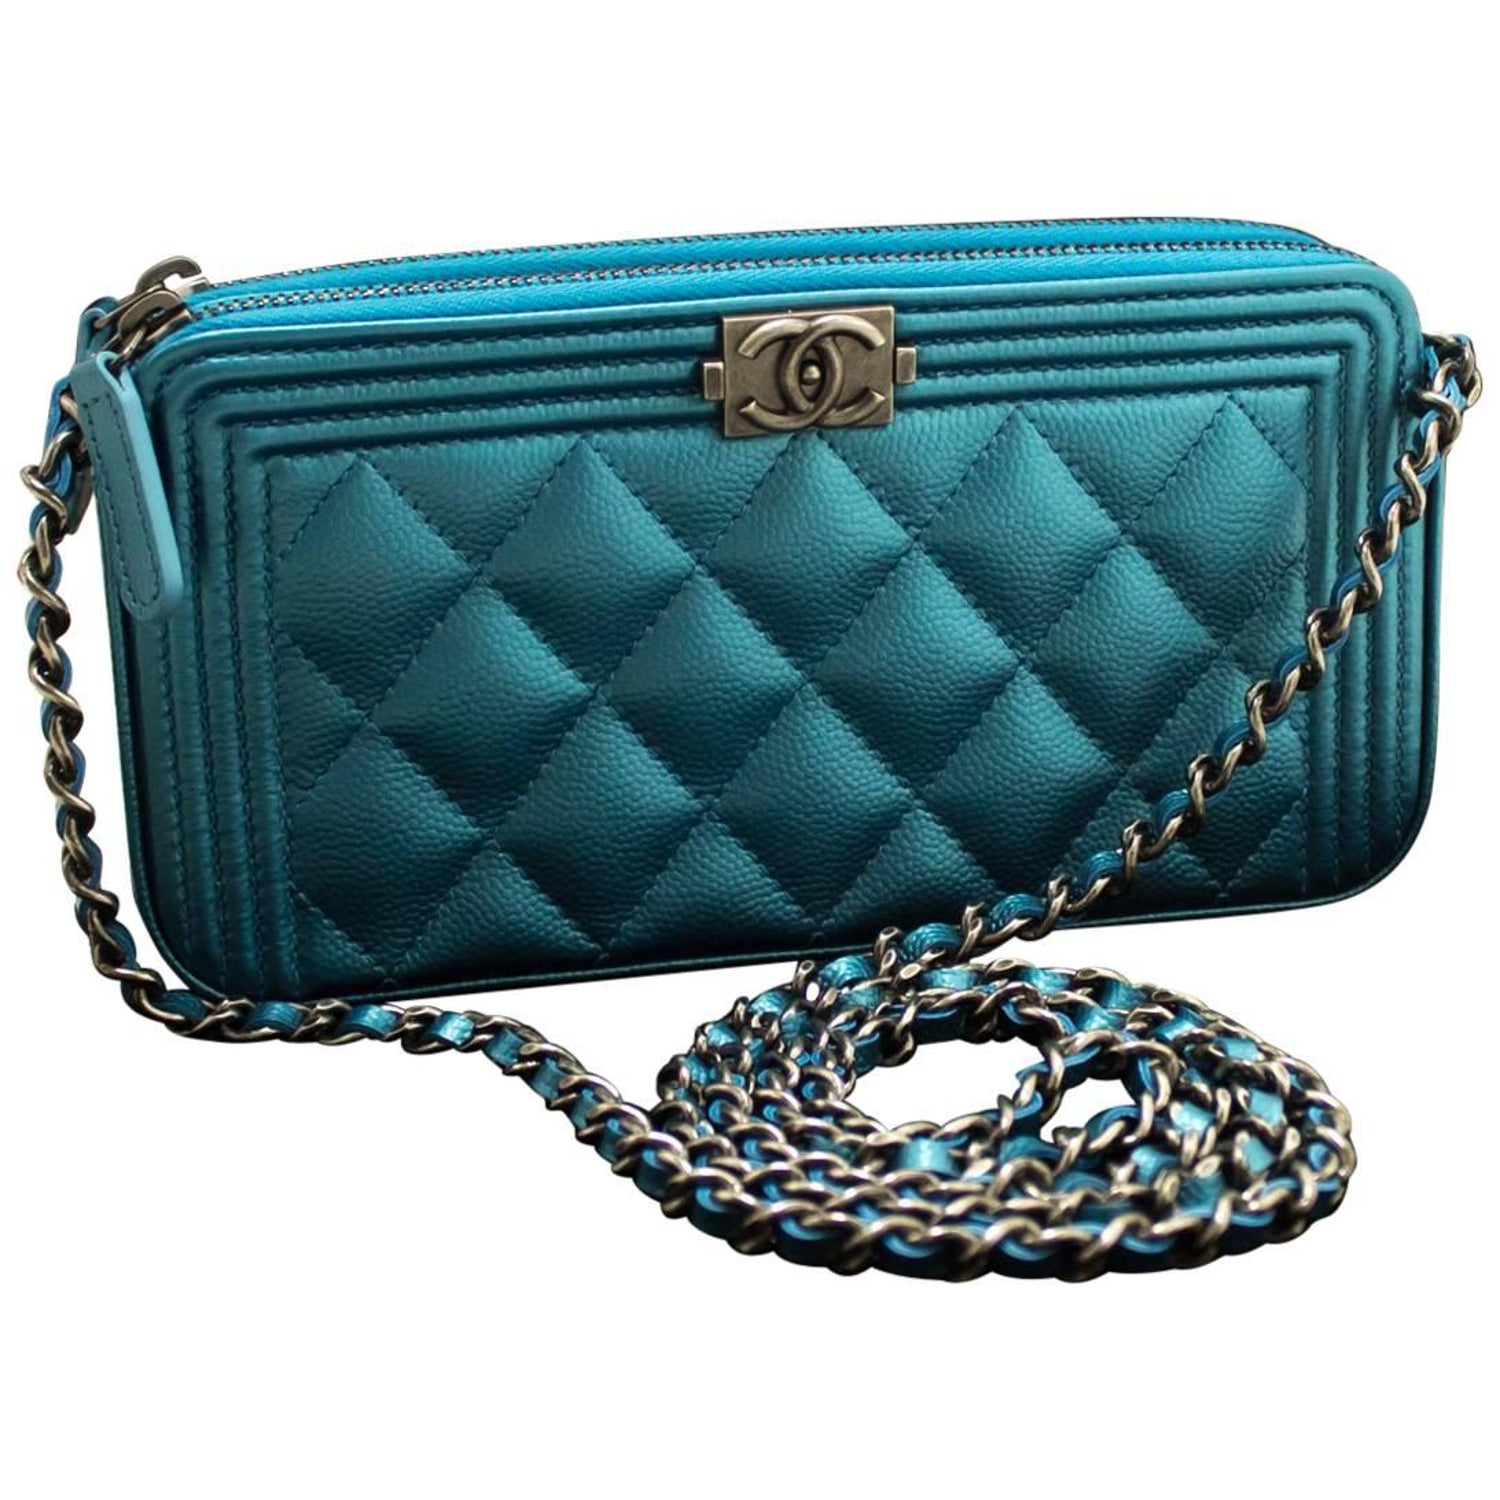 6d9df39617ea Chanel Boy Metallic Blue Caviar Wallet On Chain WOC Clutch Bag For Sale at  1stdibs